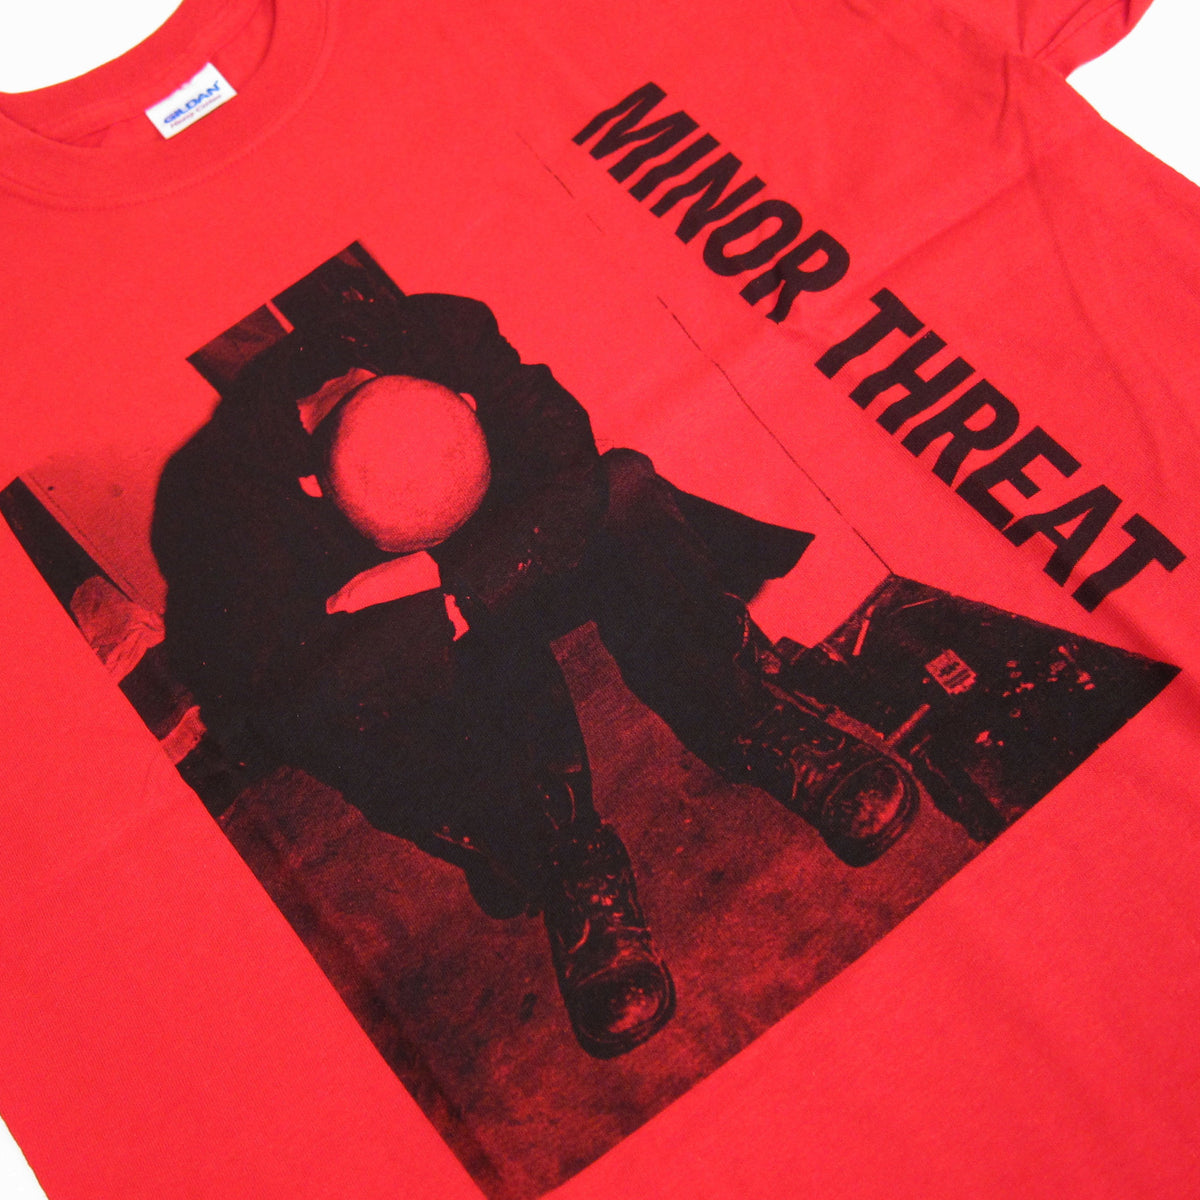 Minor Threat: LP Shirt - Red detail